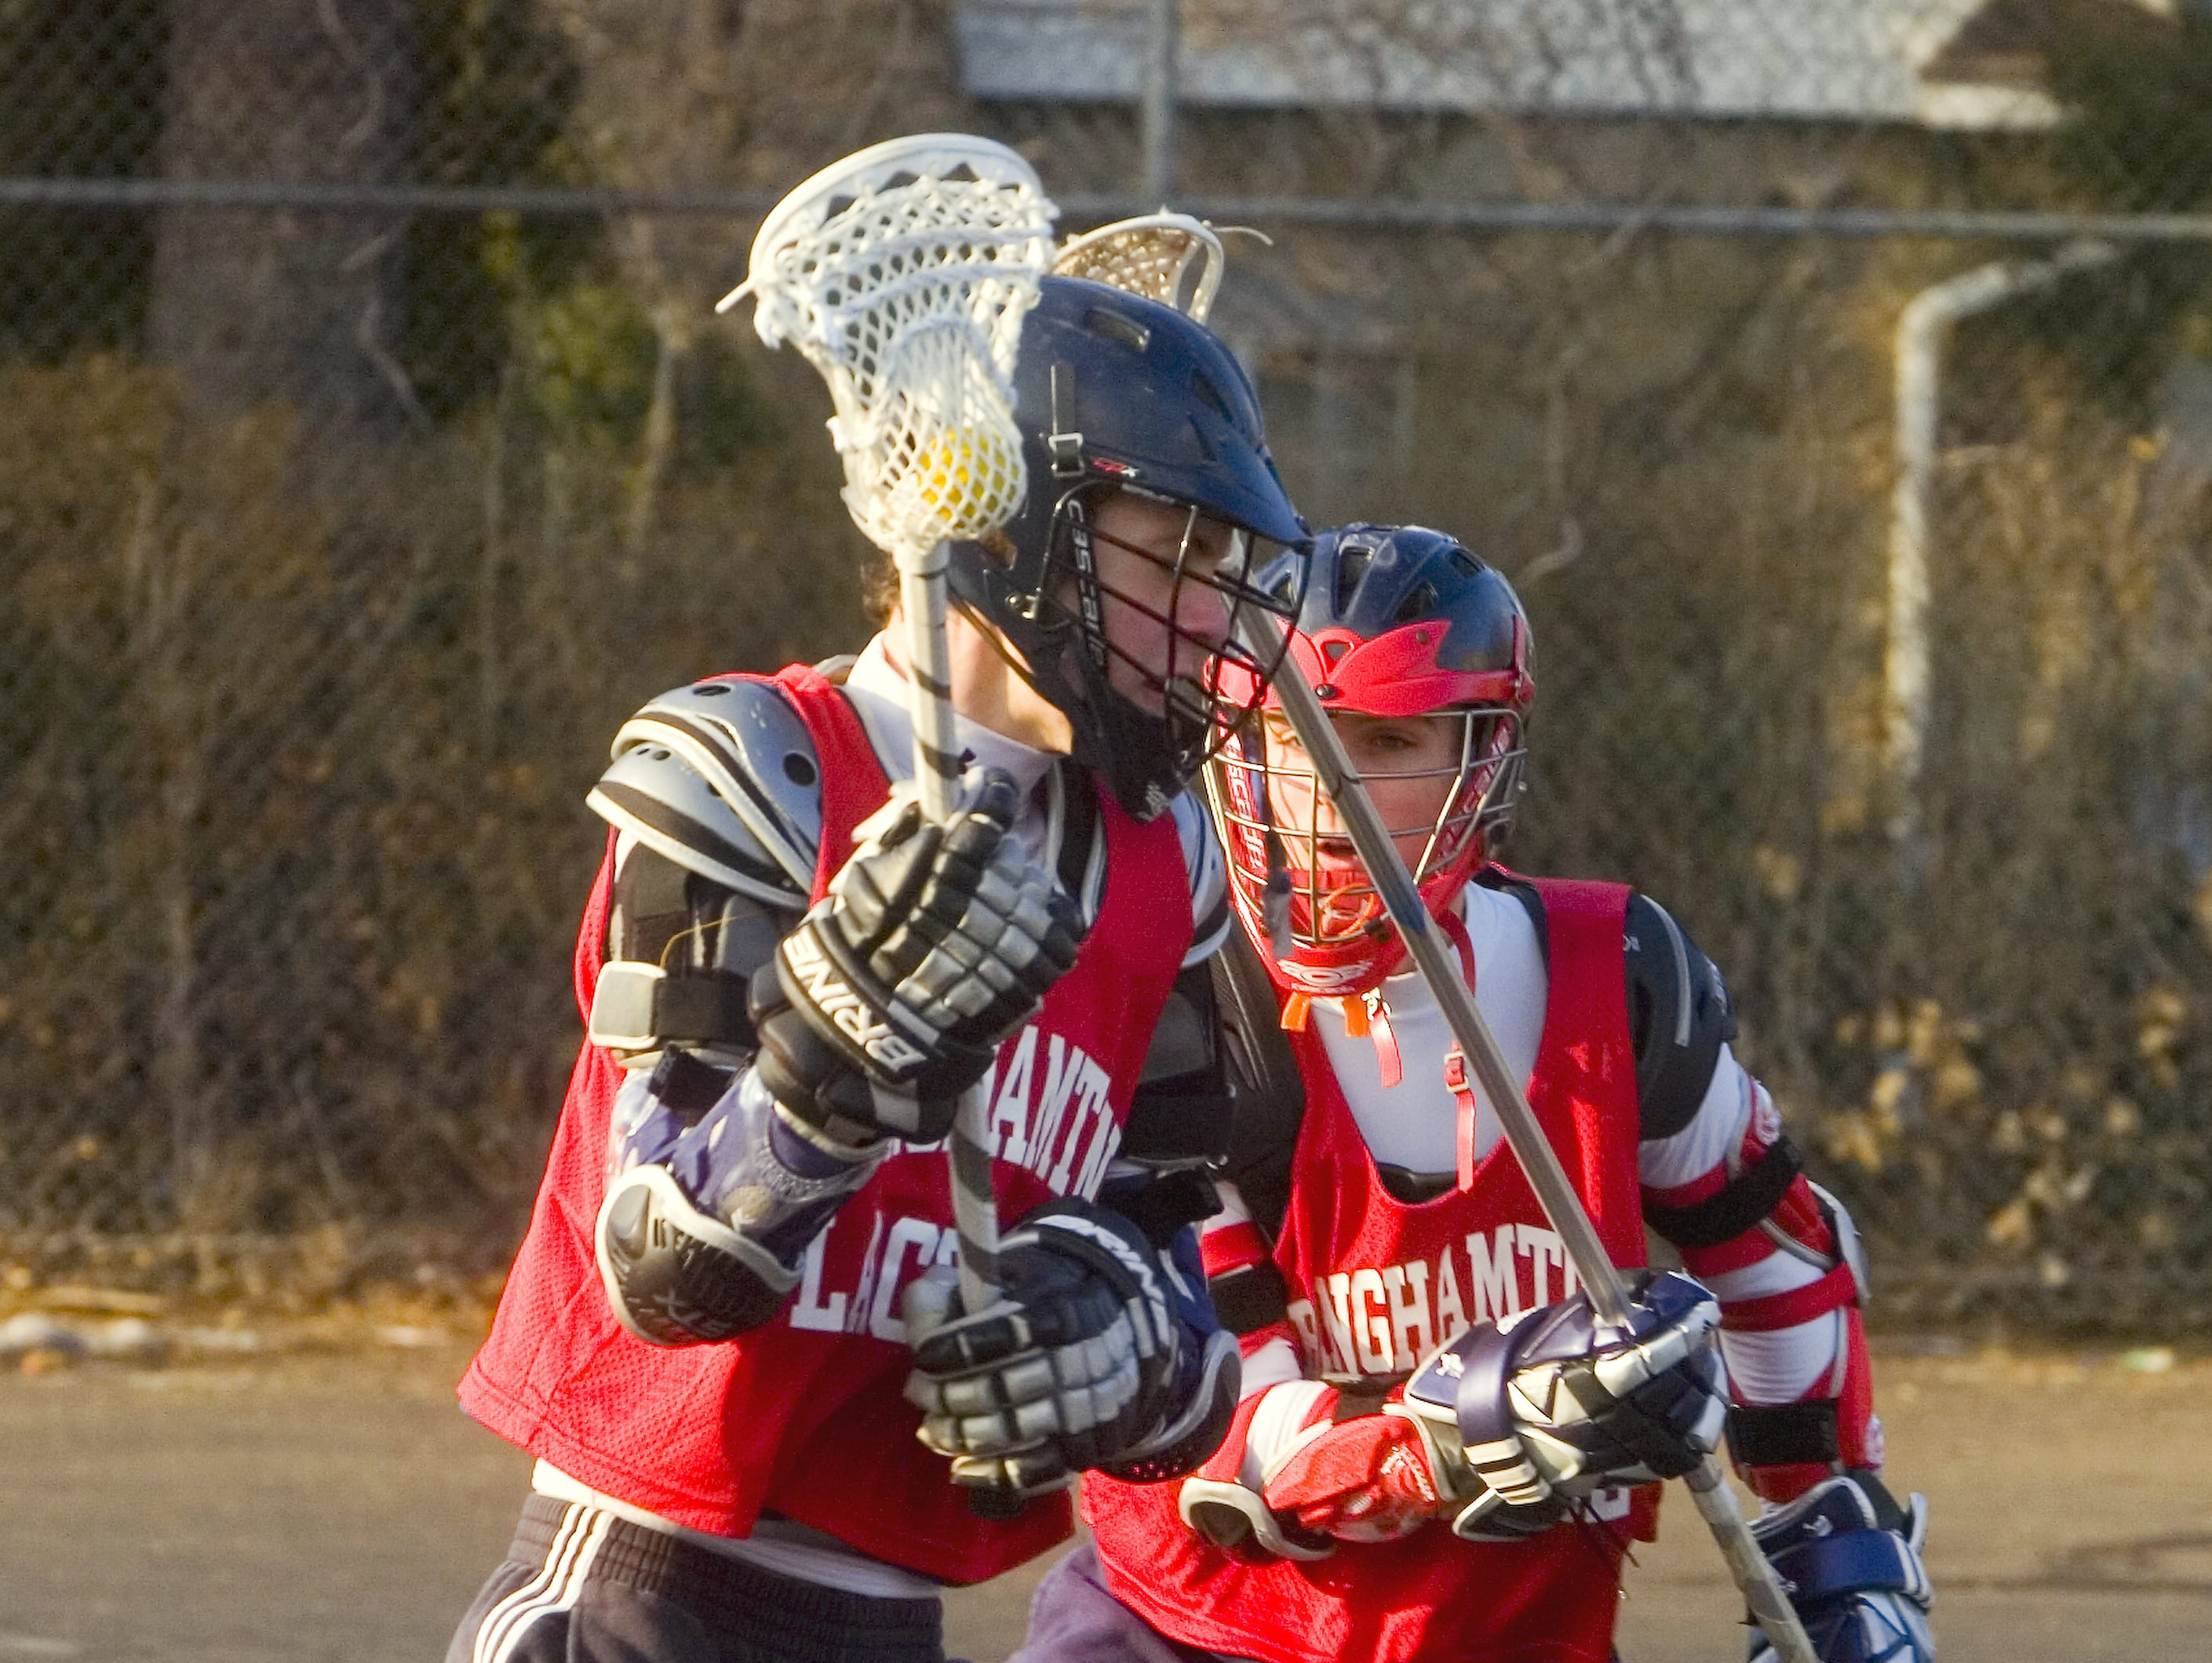 2008: Matt Grant, left, and Brody Terry two Binghamton high school sophomores are at lacrosse practice Monday afternoon in Binghamton.